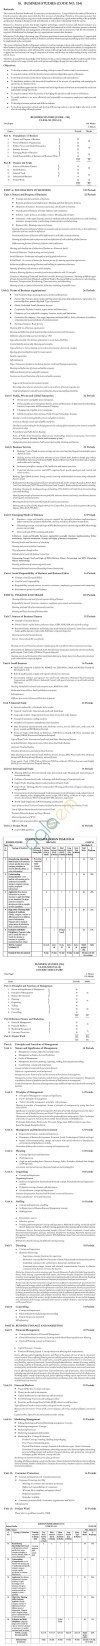 CBSE Class XI / XII Business Studies Syllabus 2014 - 2015